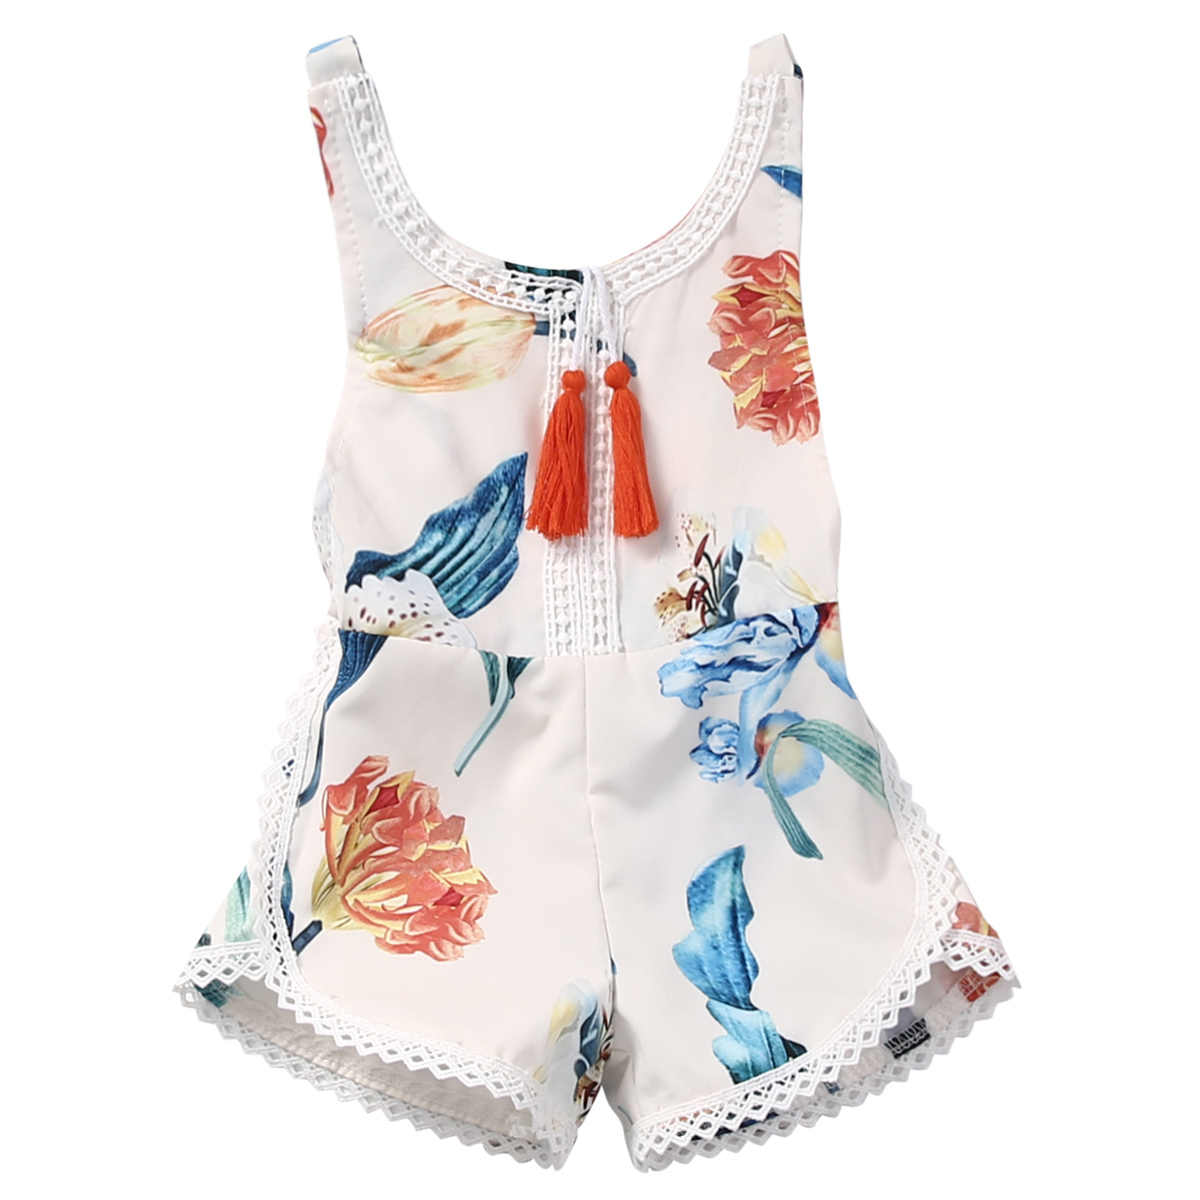 8ec8f085e55 Detail Feedback Questions about Pudcoco Kids Dungaree Shorts For Girls  Summer Clothing Bib Overalls Jumpsuits Flower Print 0 4 Years on  Aliexpress.com ...